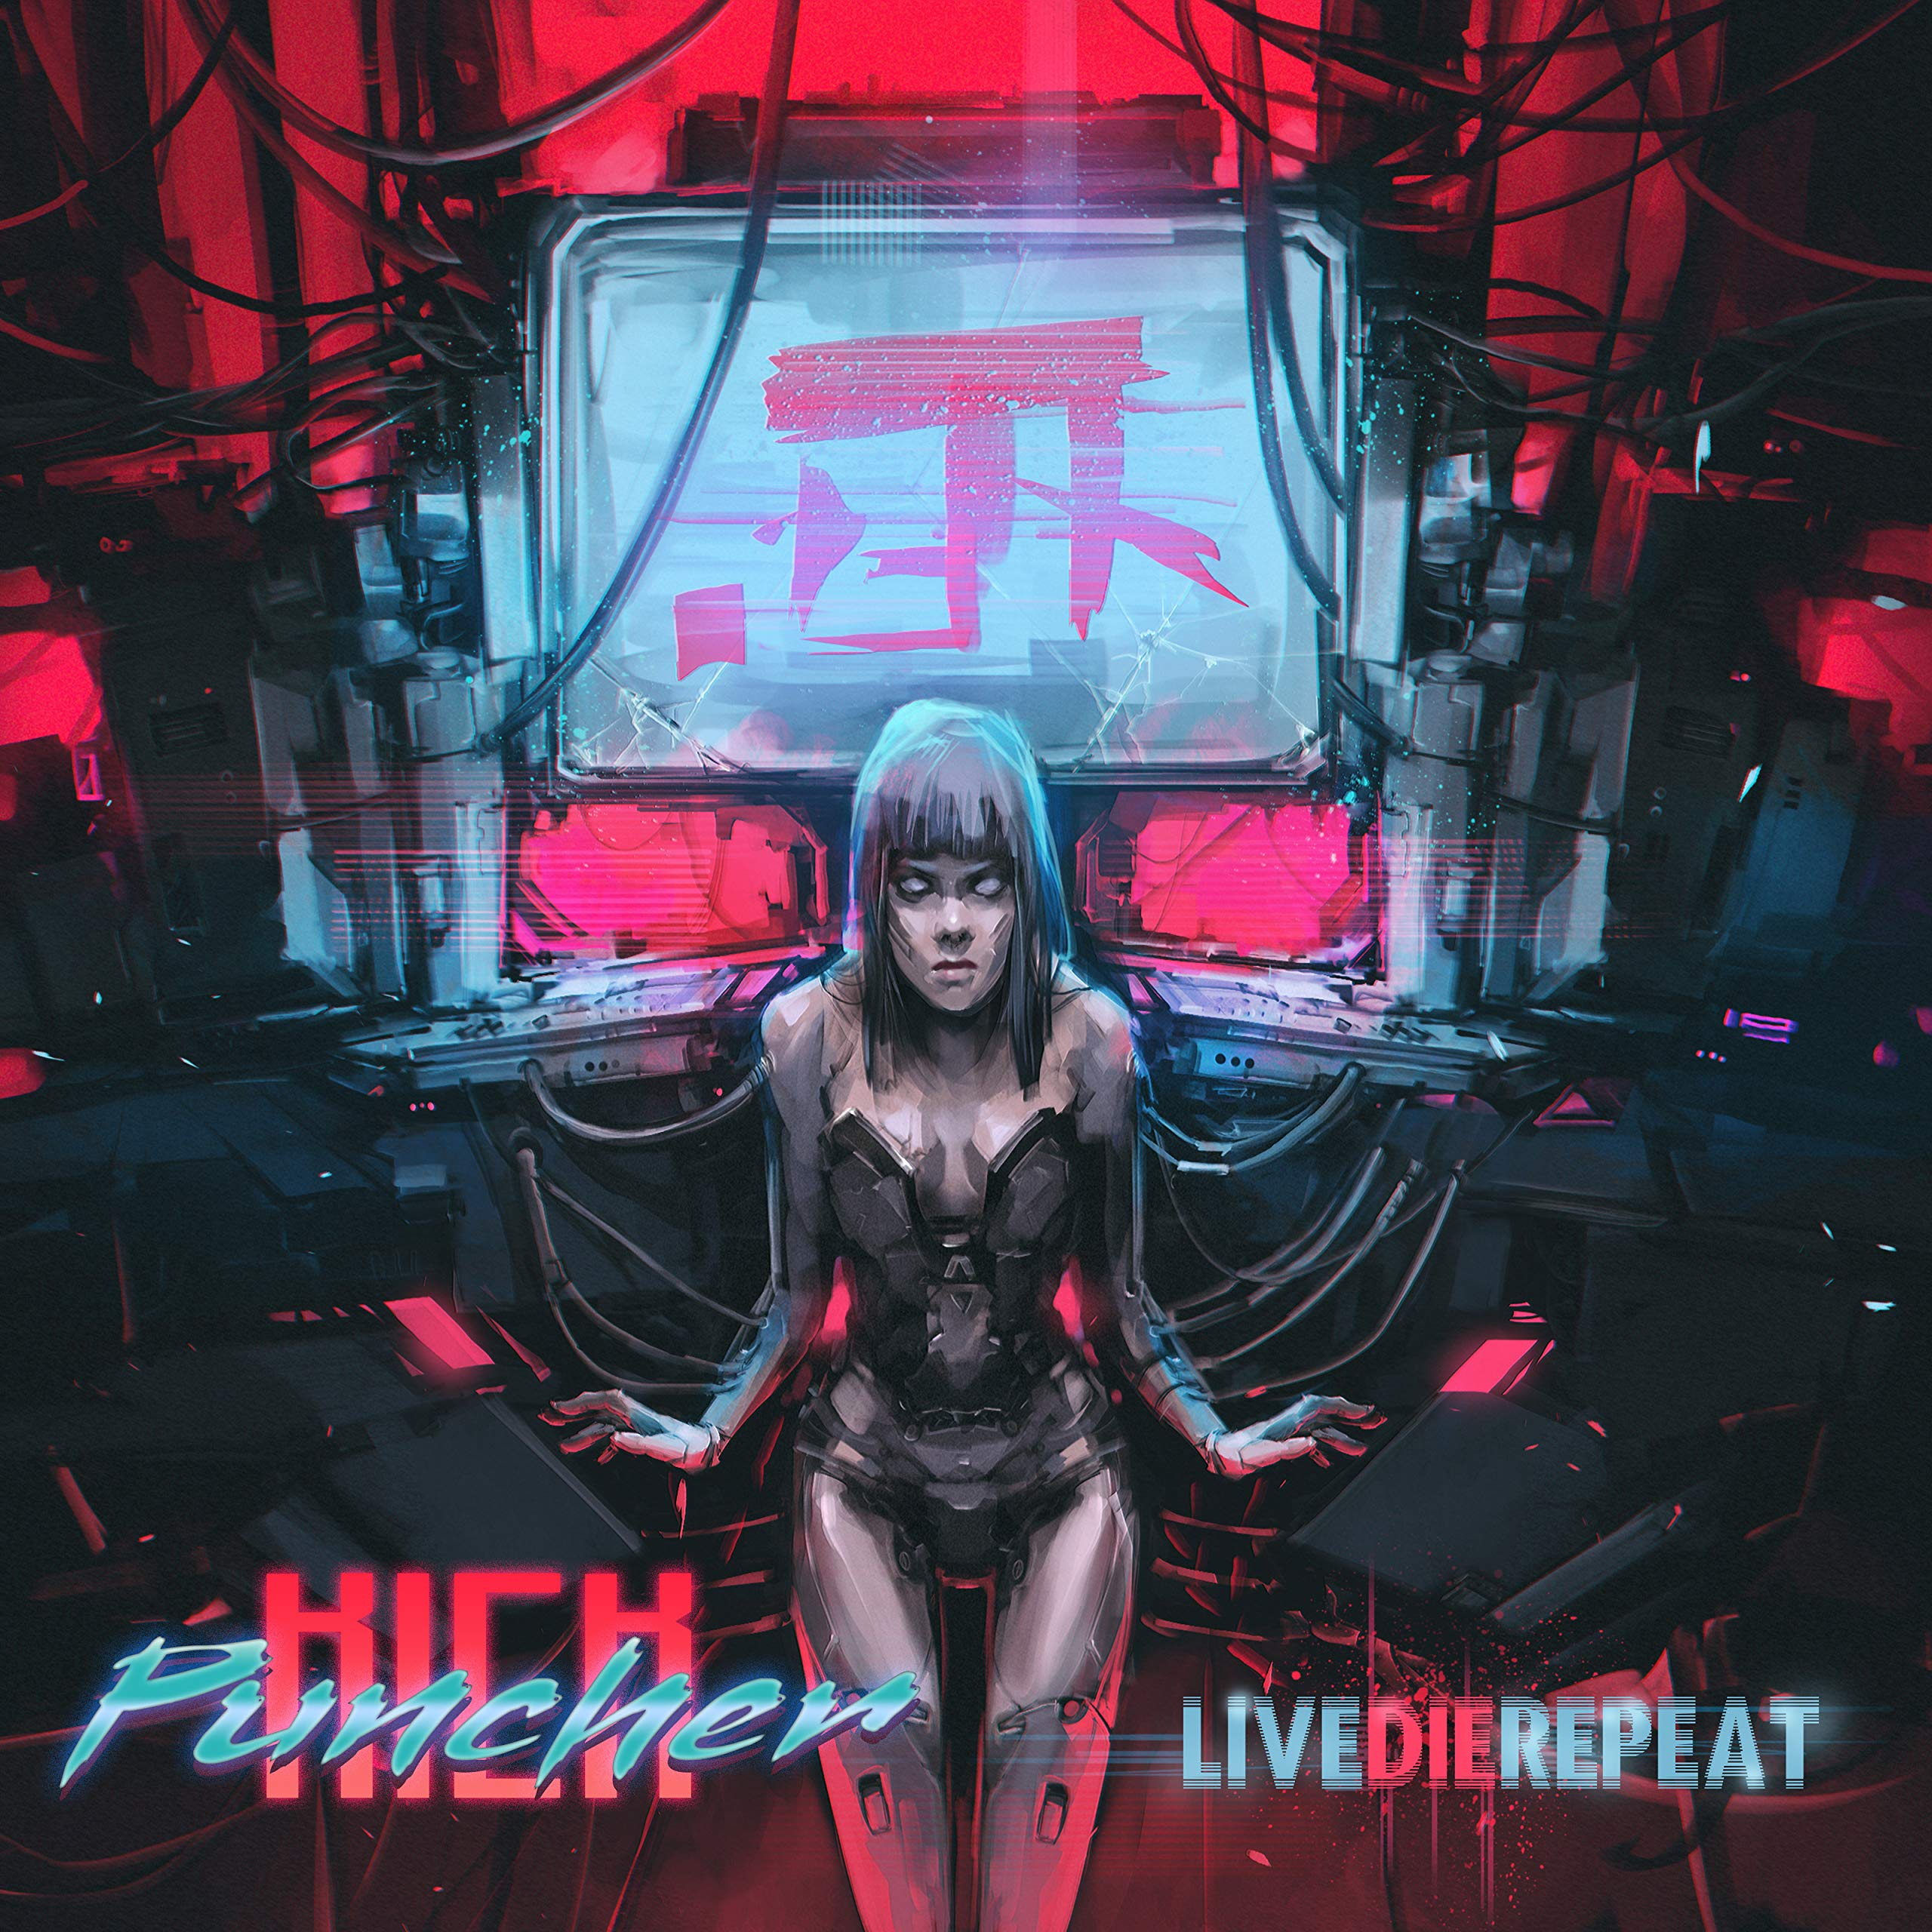 Kick Puncher - Livedierepeat (2021) [FLAC] Download